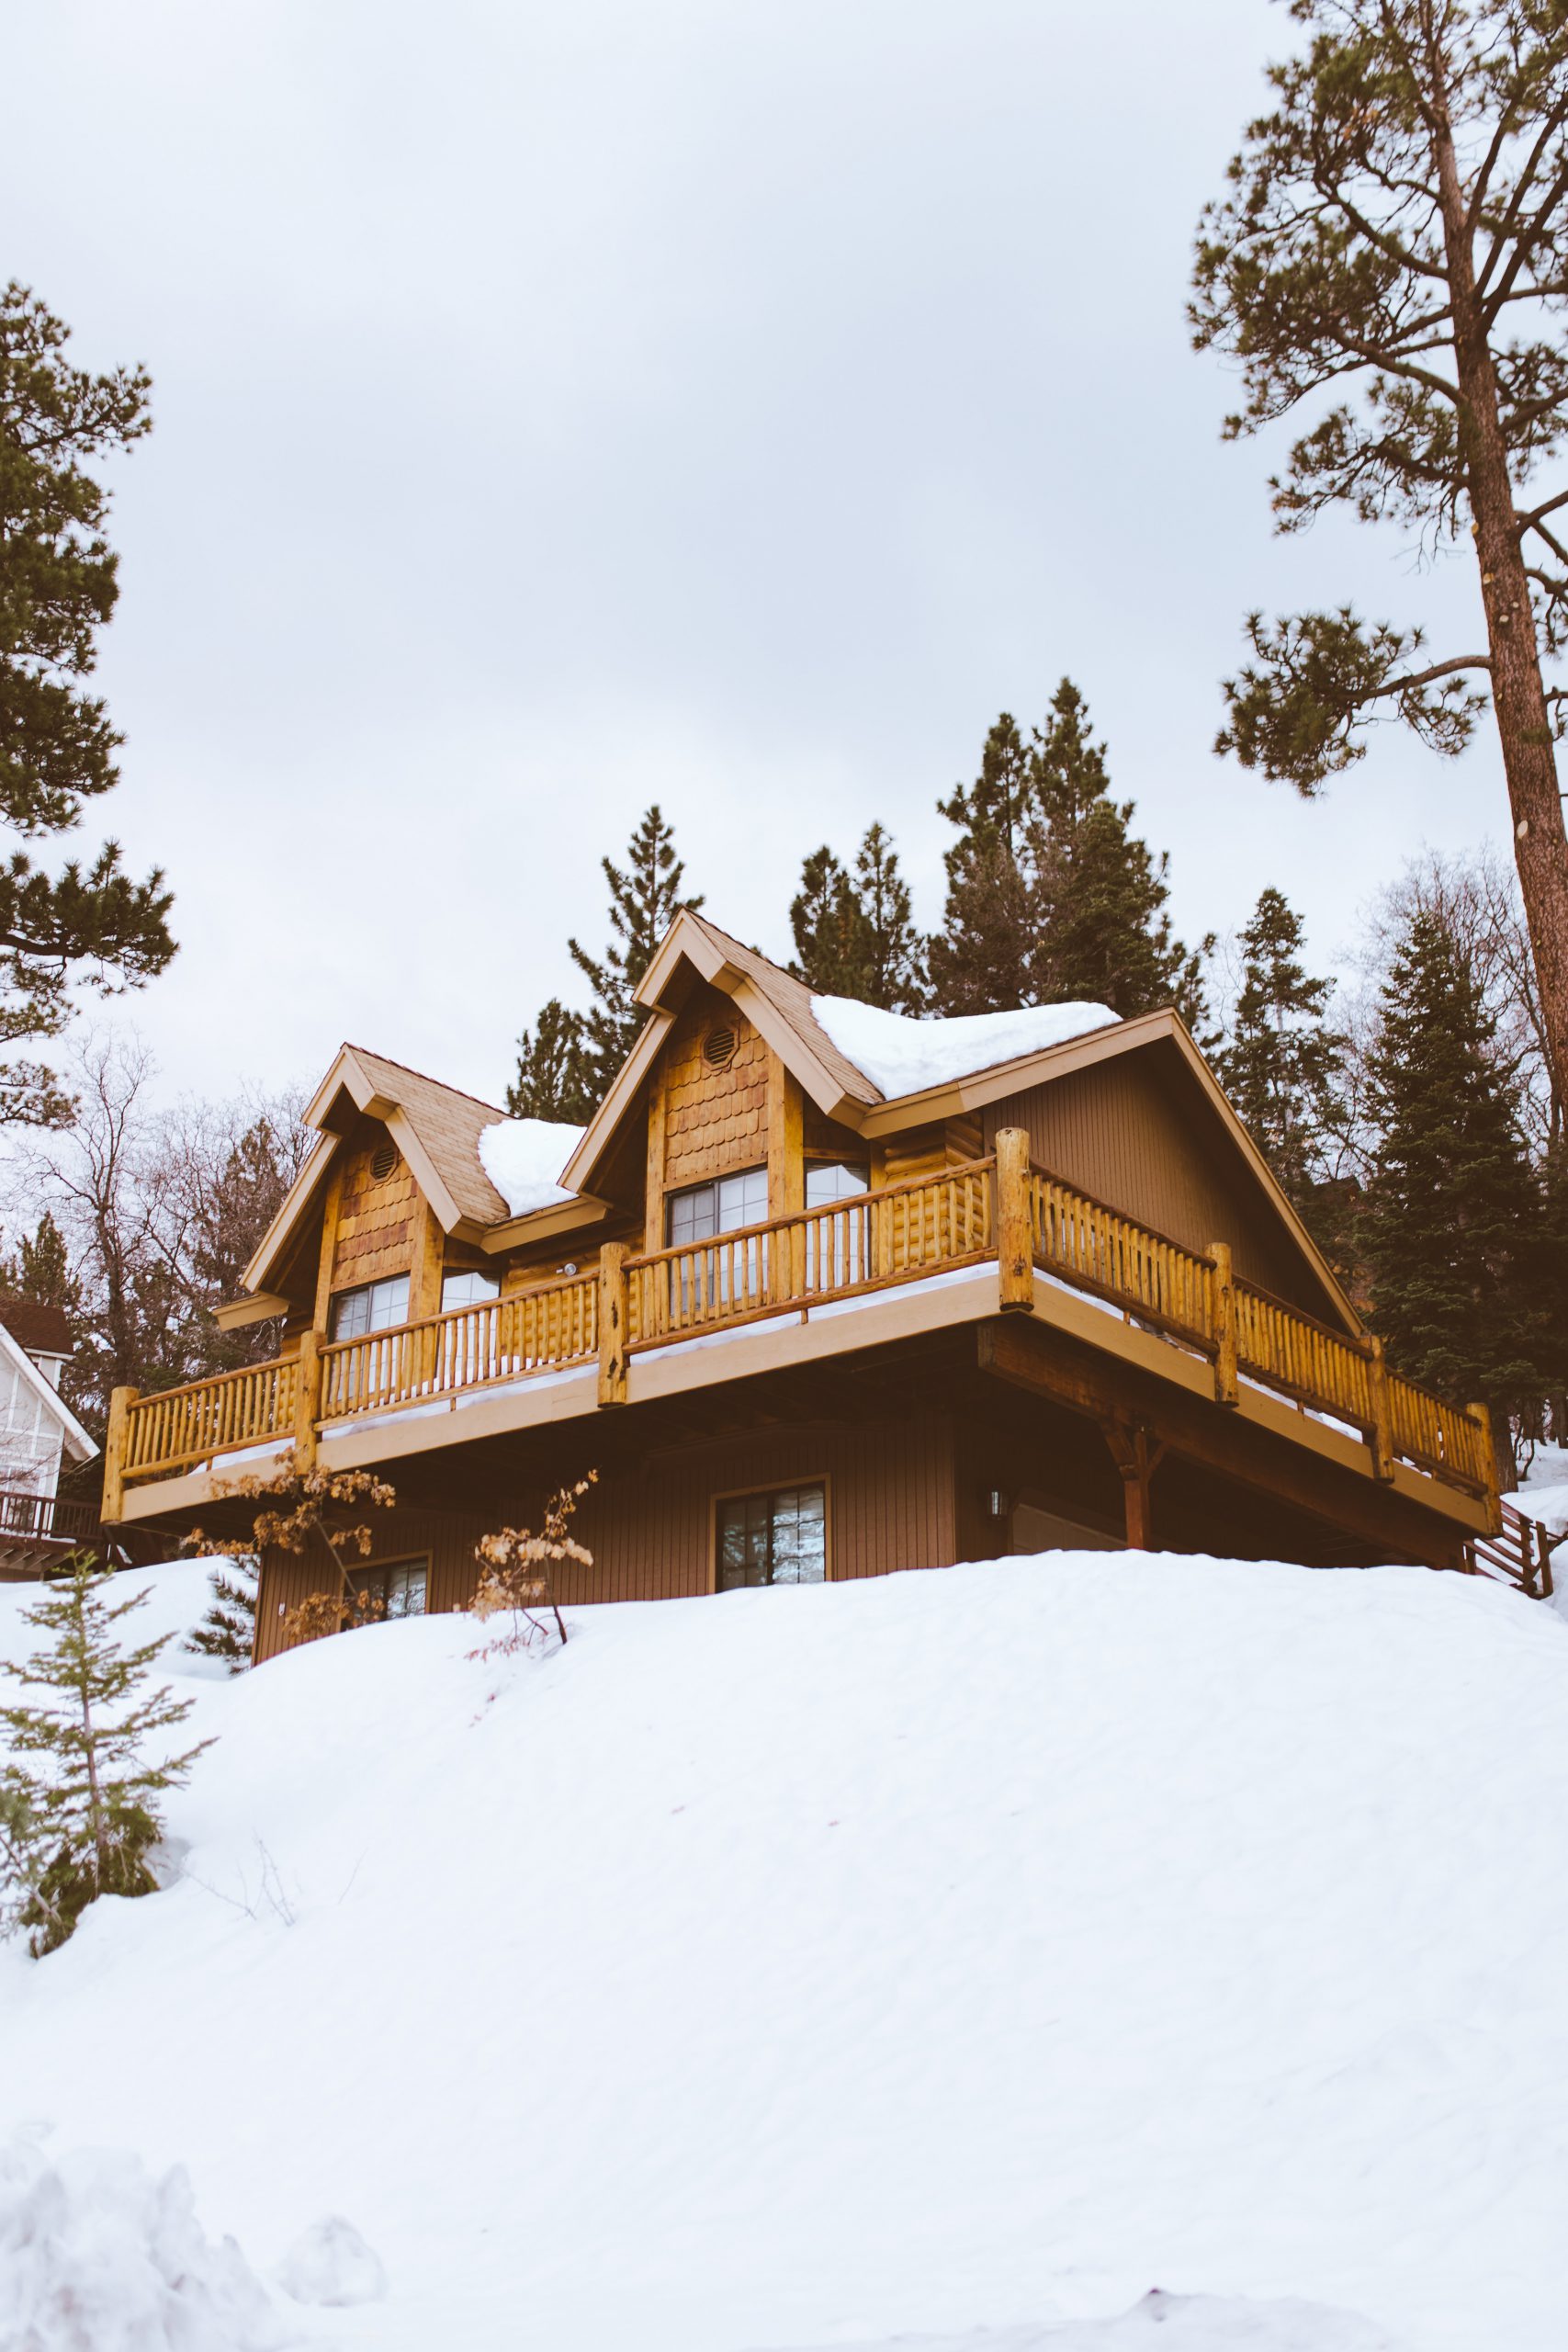 Winter Vacation Tips: How to Plan The Perfect Winter Weekend Getaway